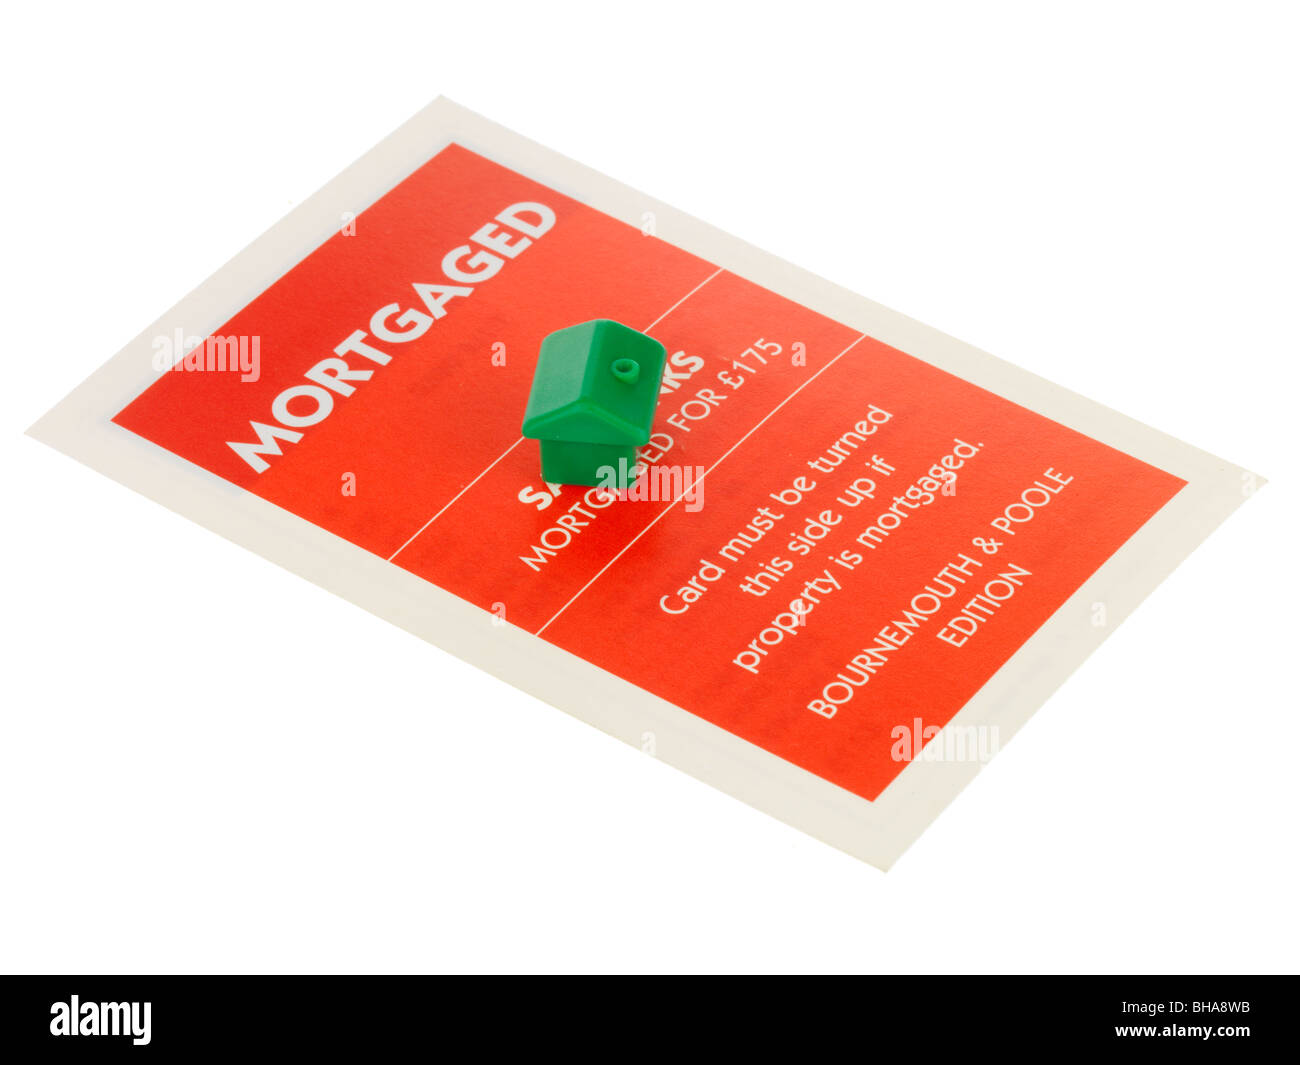 Mortgage Card - Stock Image